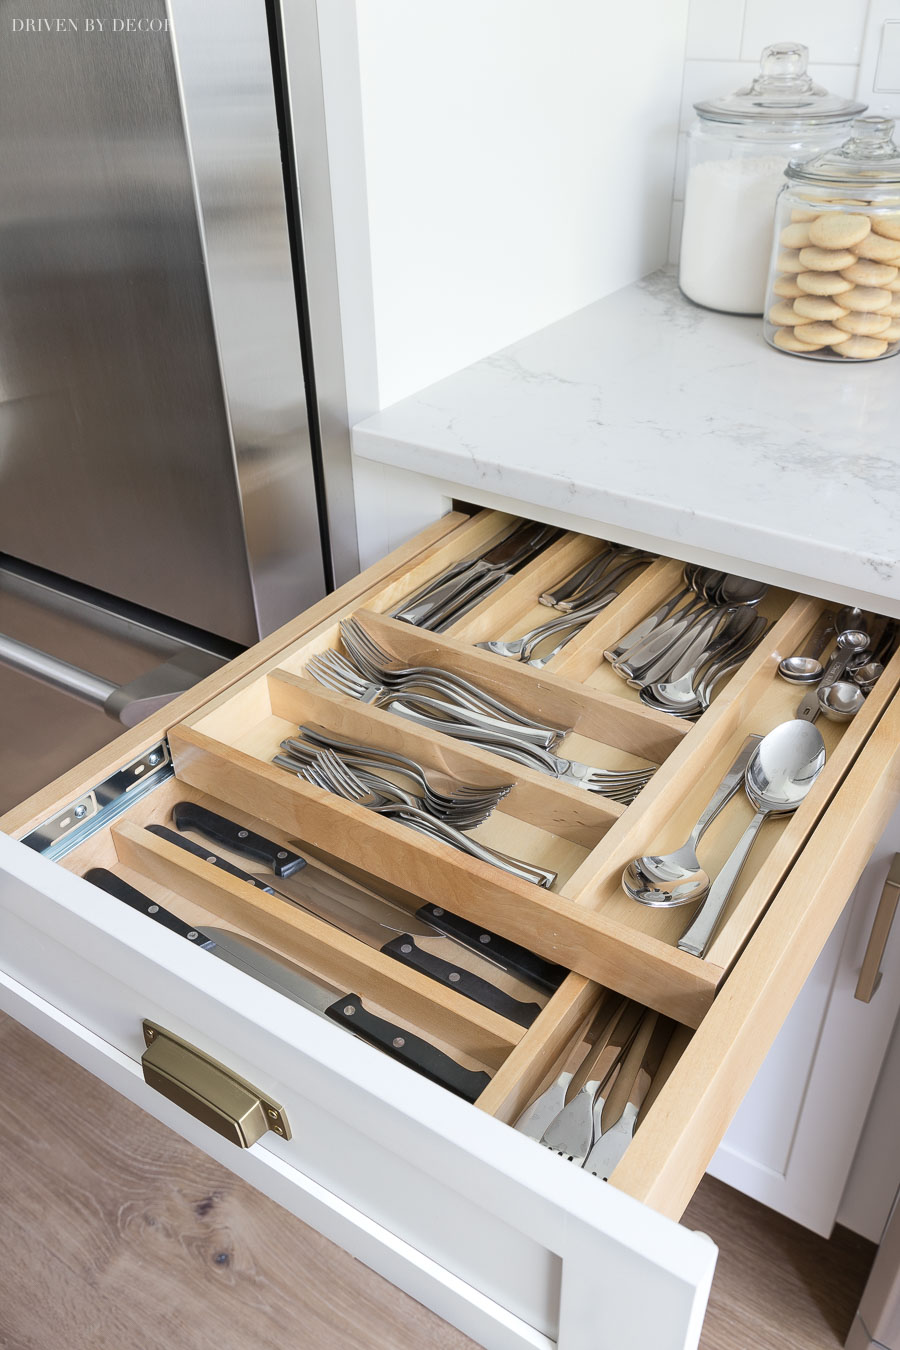 Two tiered divided cutlery drawer - put your most used silverware on the top and have room for steak knives and other less commonly used cutlery on the bottom!